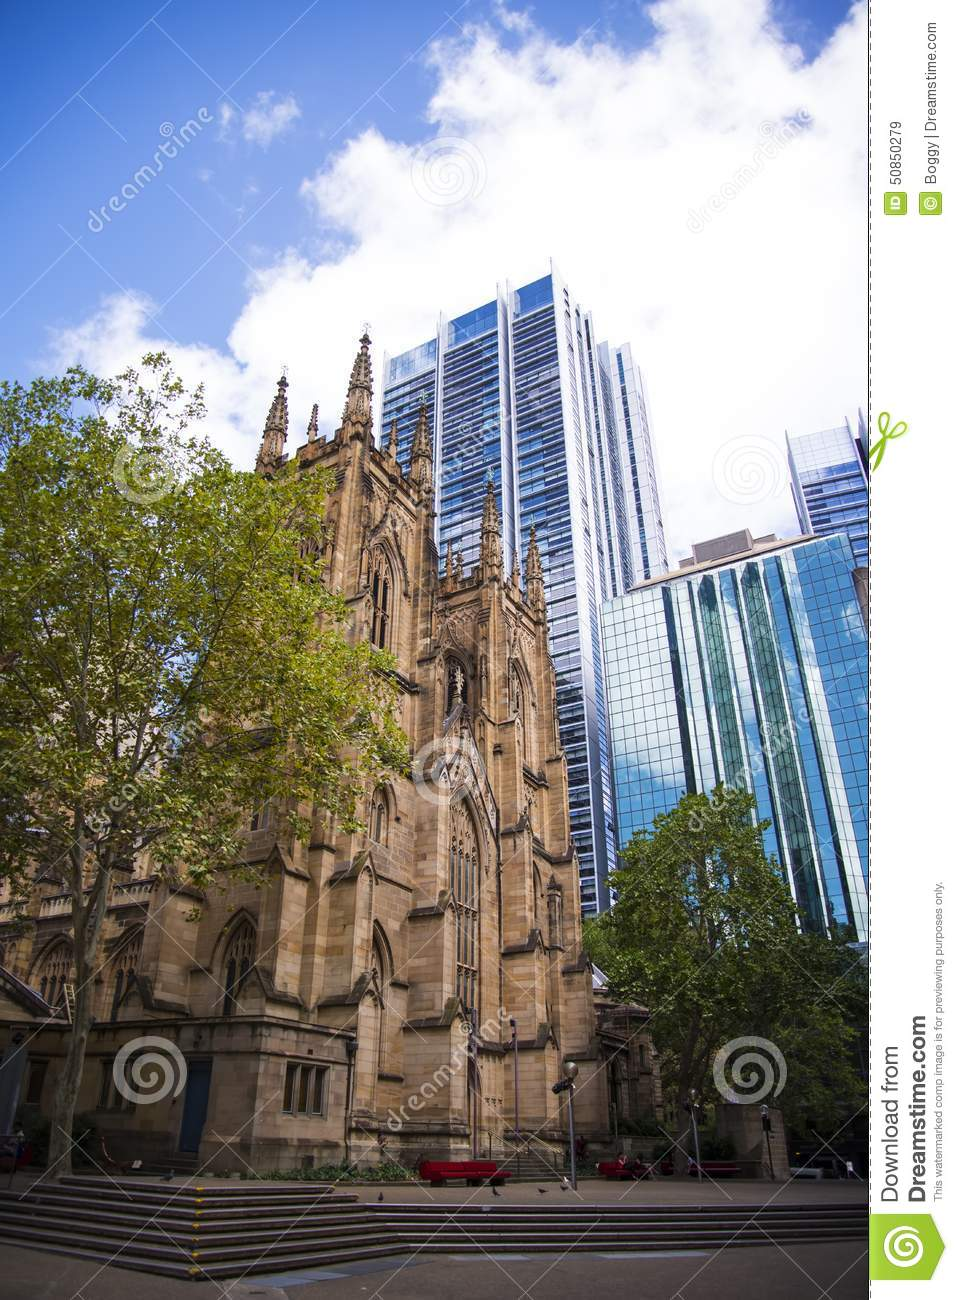 Cattedrale di St Andrew a Sydney